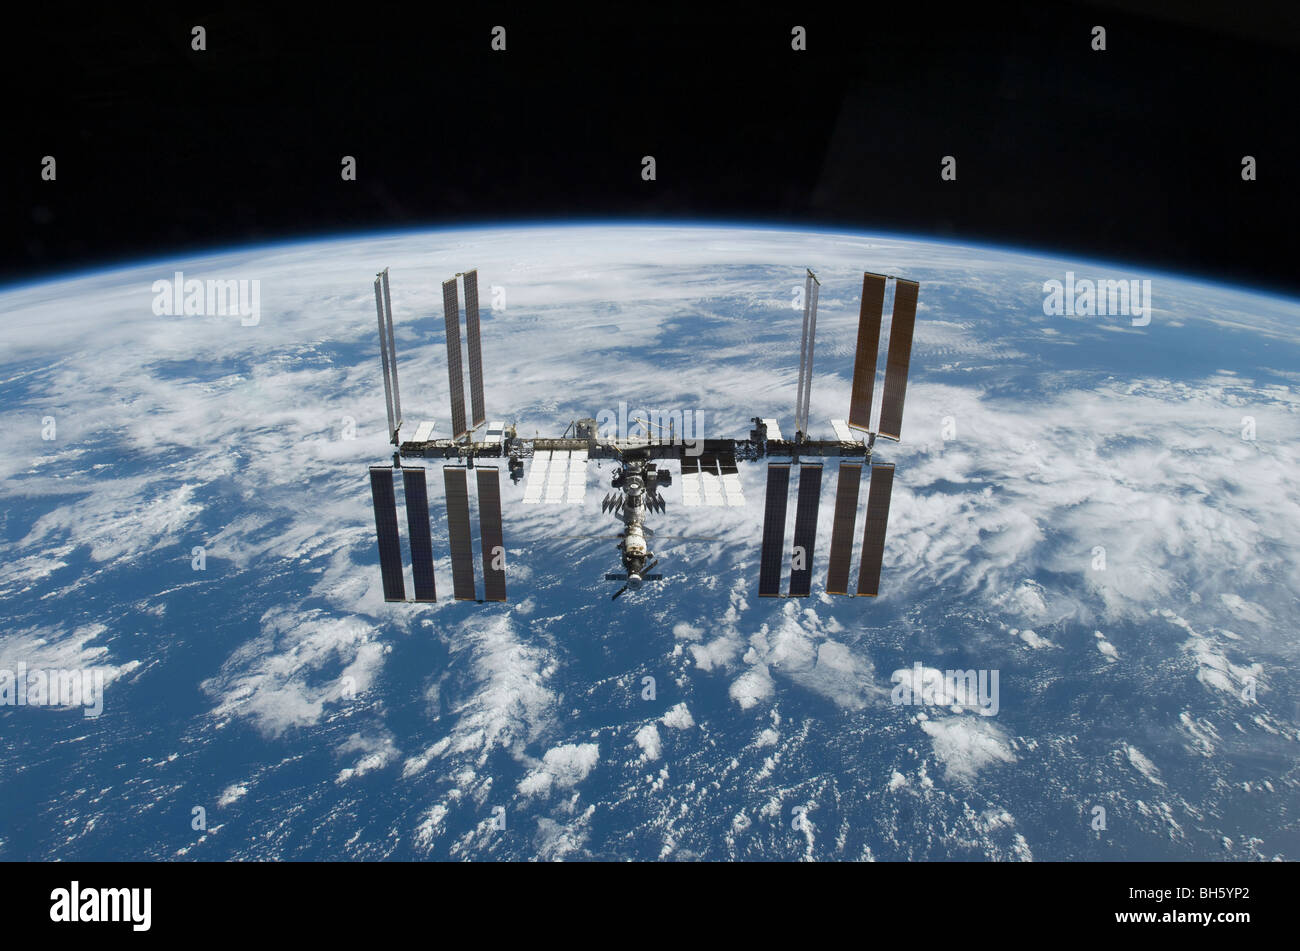 November 25, 2009 - The International Space Station in orbit above the Earth. - Stock Image